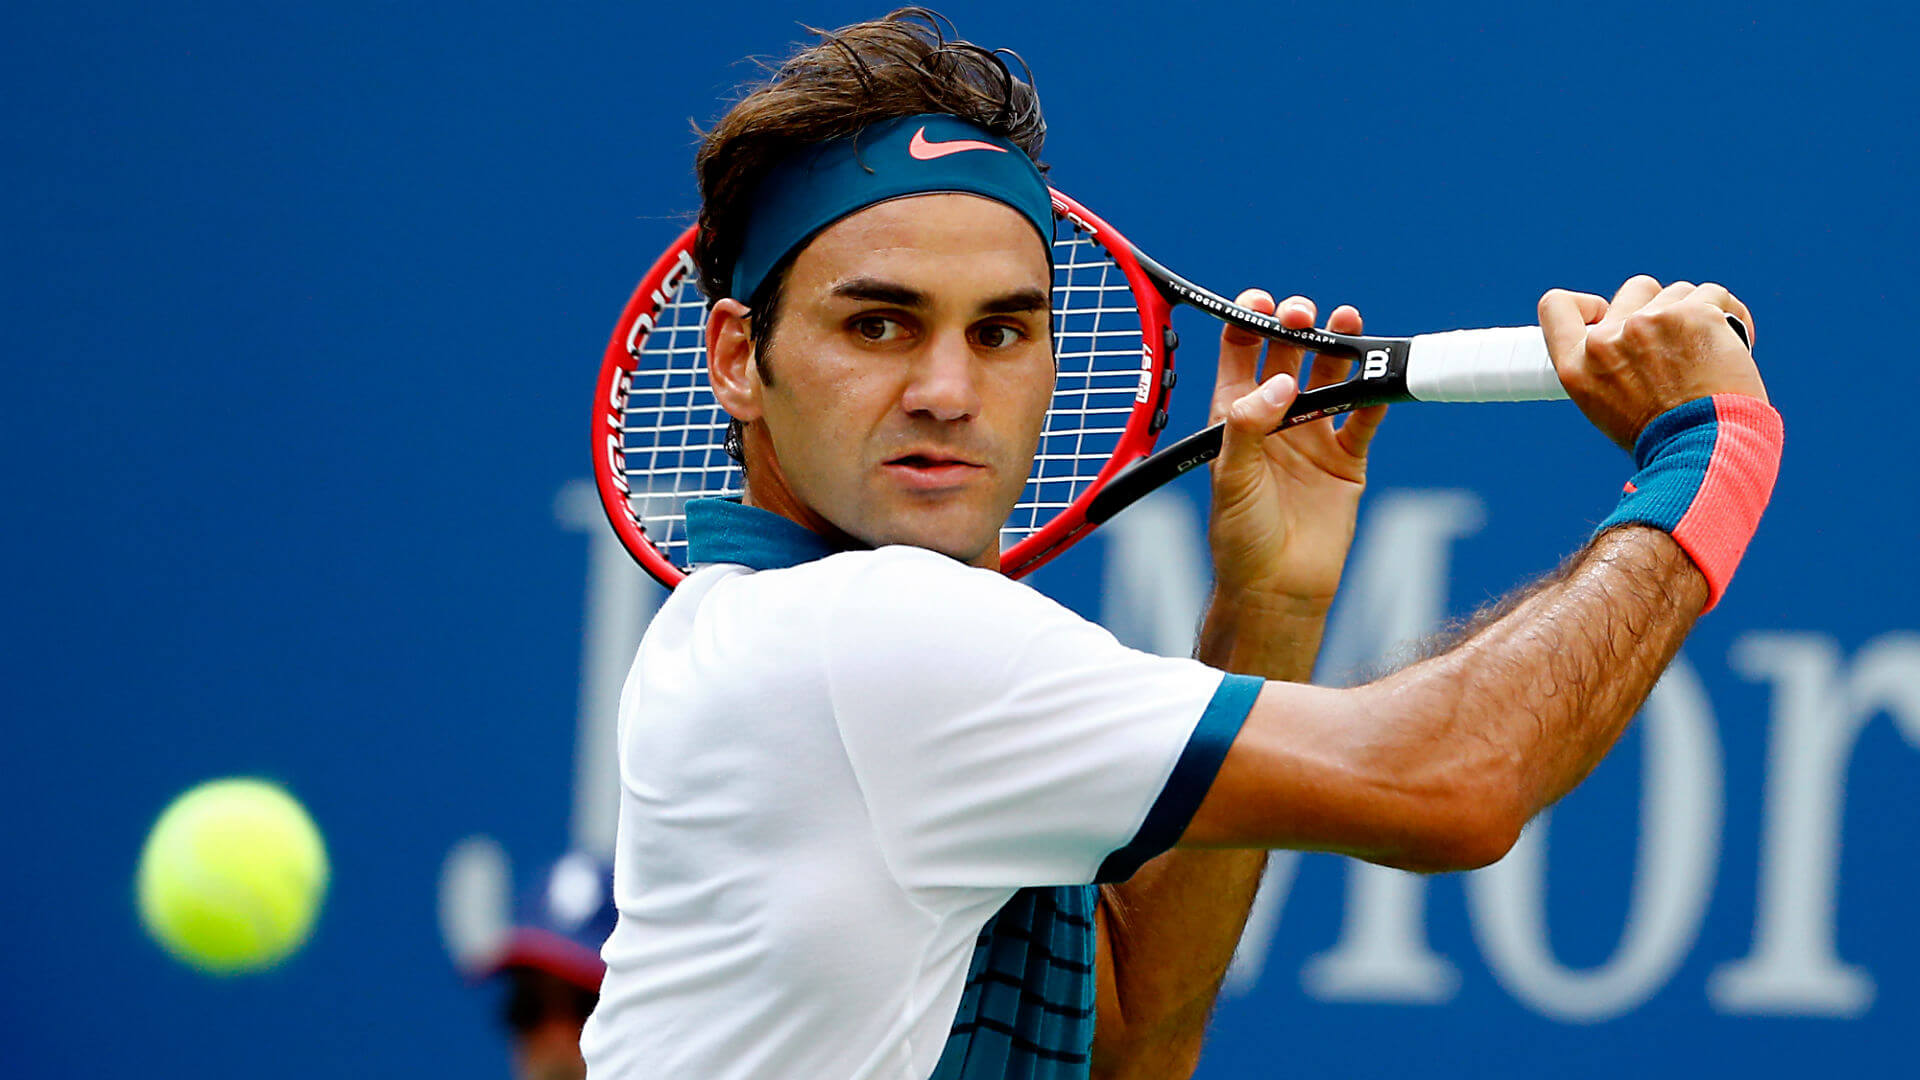 Roger Federer - One of the Richest Sportsman in the World